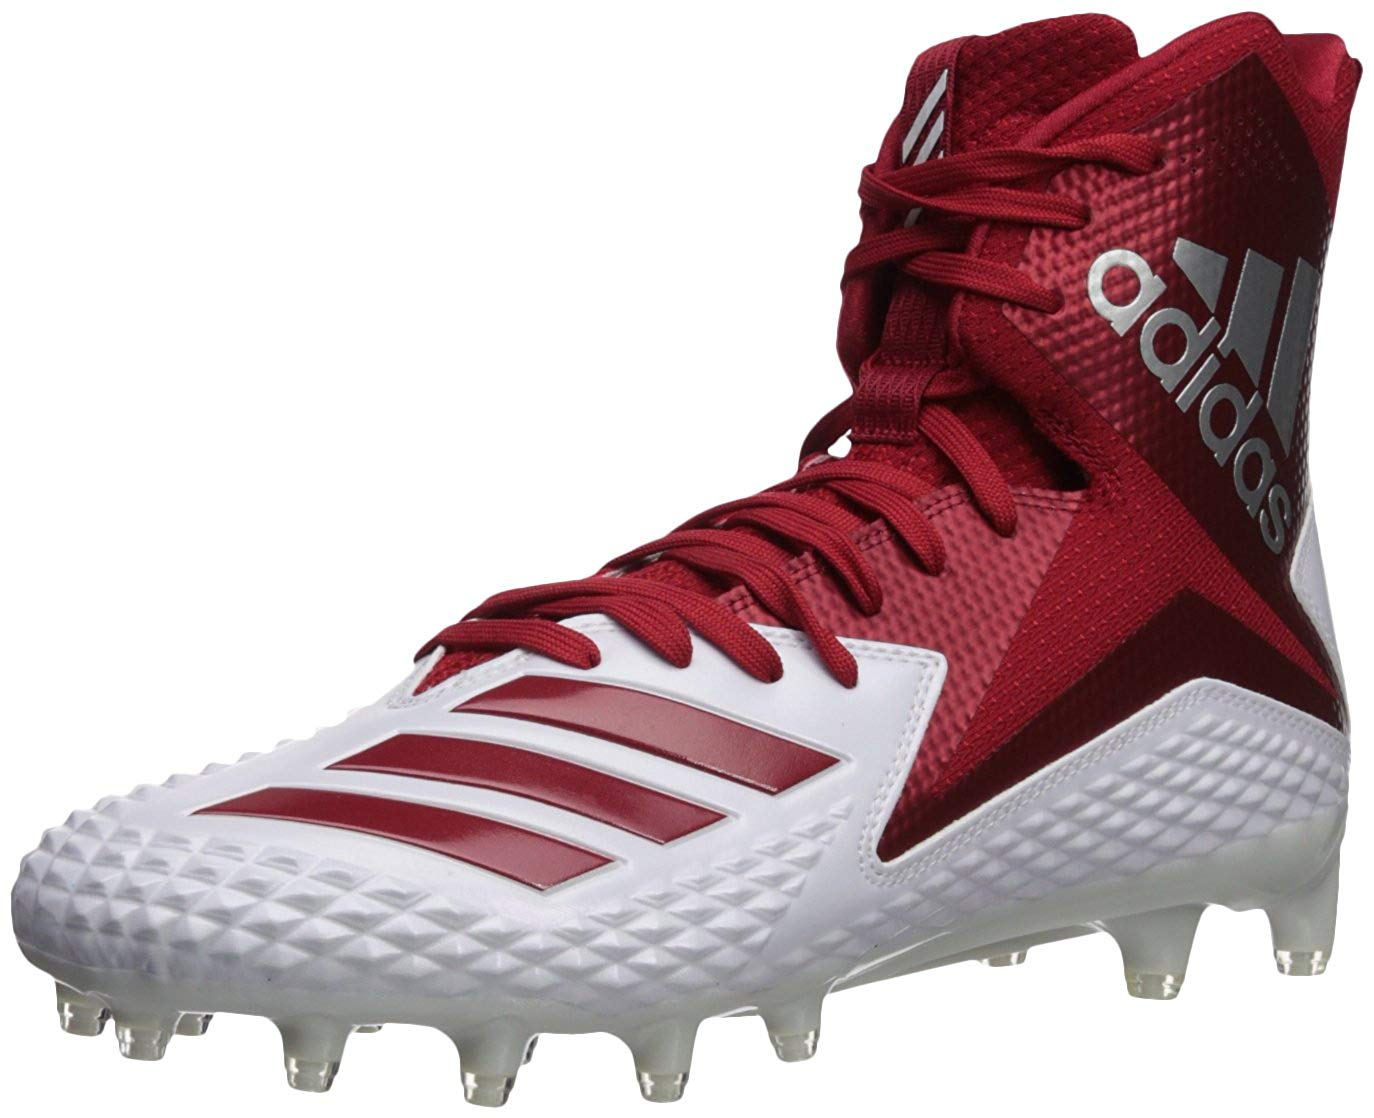 Details about Adidas Mens Freak x Carbon Hight Top Lace Up Baseball Shoes, Red, Size 14.0 GZmt